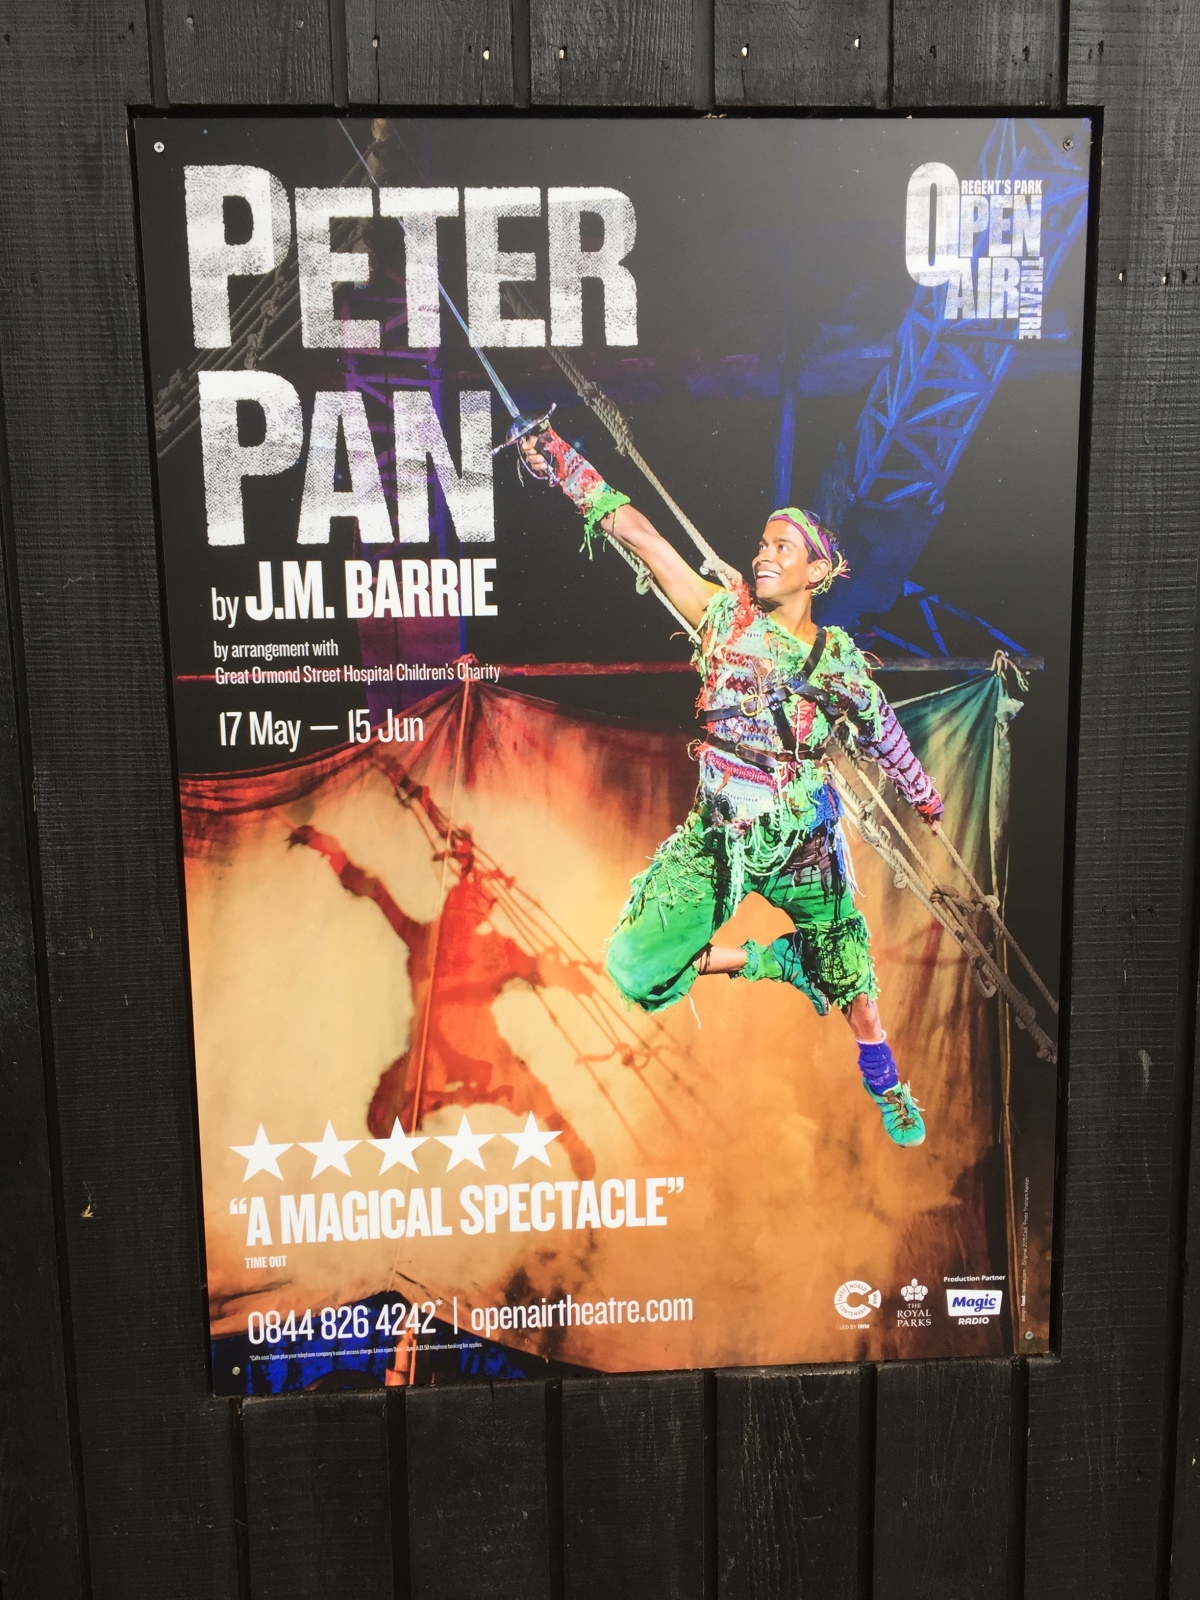 Poster for Peter Pan by J.M. Barrie, at the Regent's Park Open Air Theatre from 17 May to 15 June. Includes an image of Peter Pan flying and smiling, holding his sword up in front of him, with the sail of Captain Hook's boat behind him.